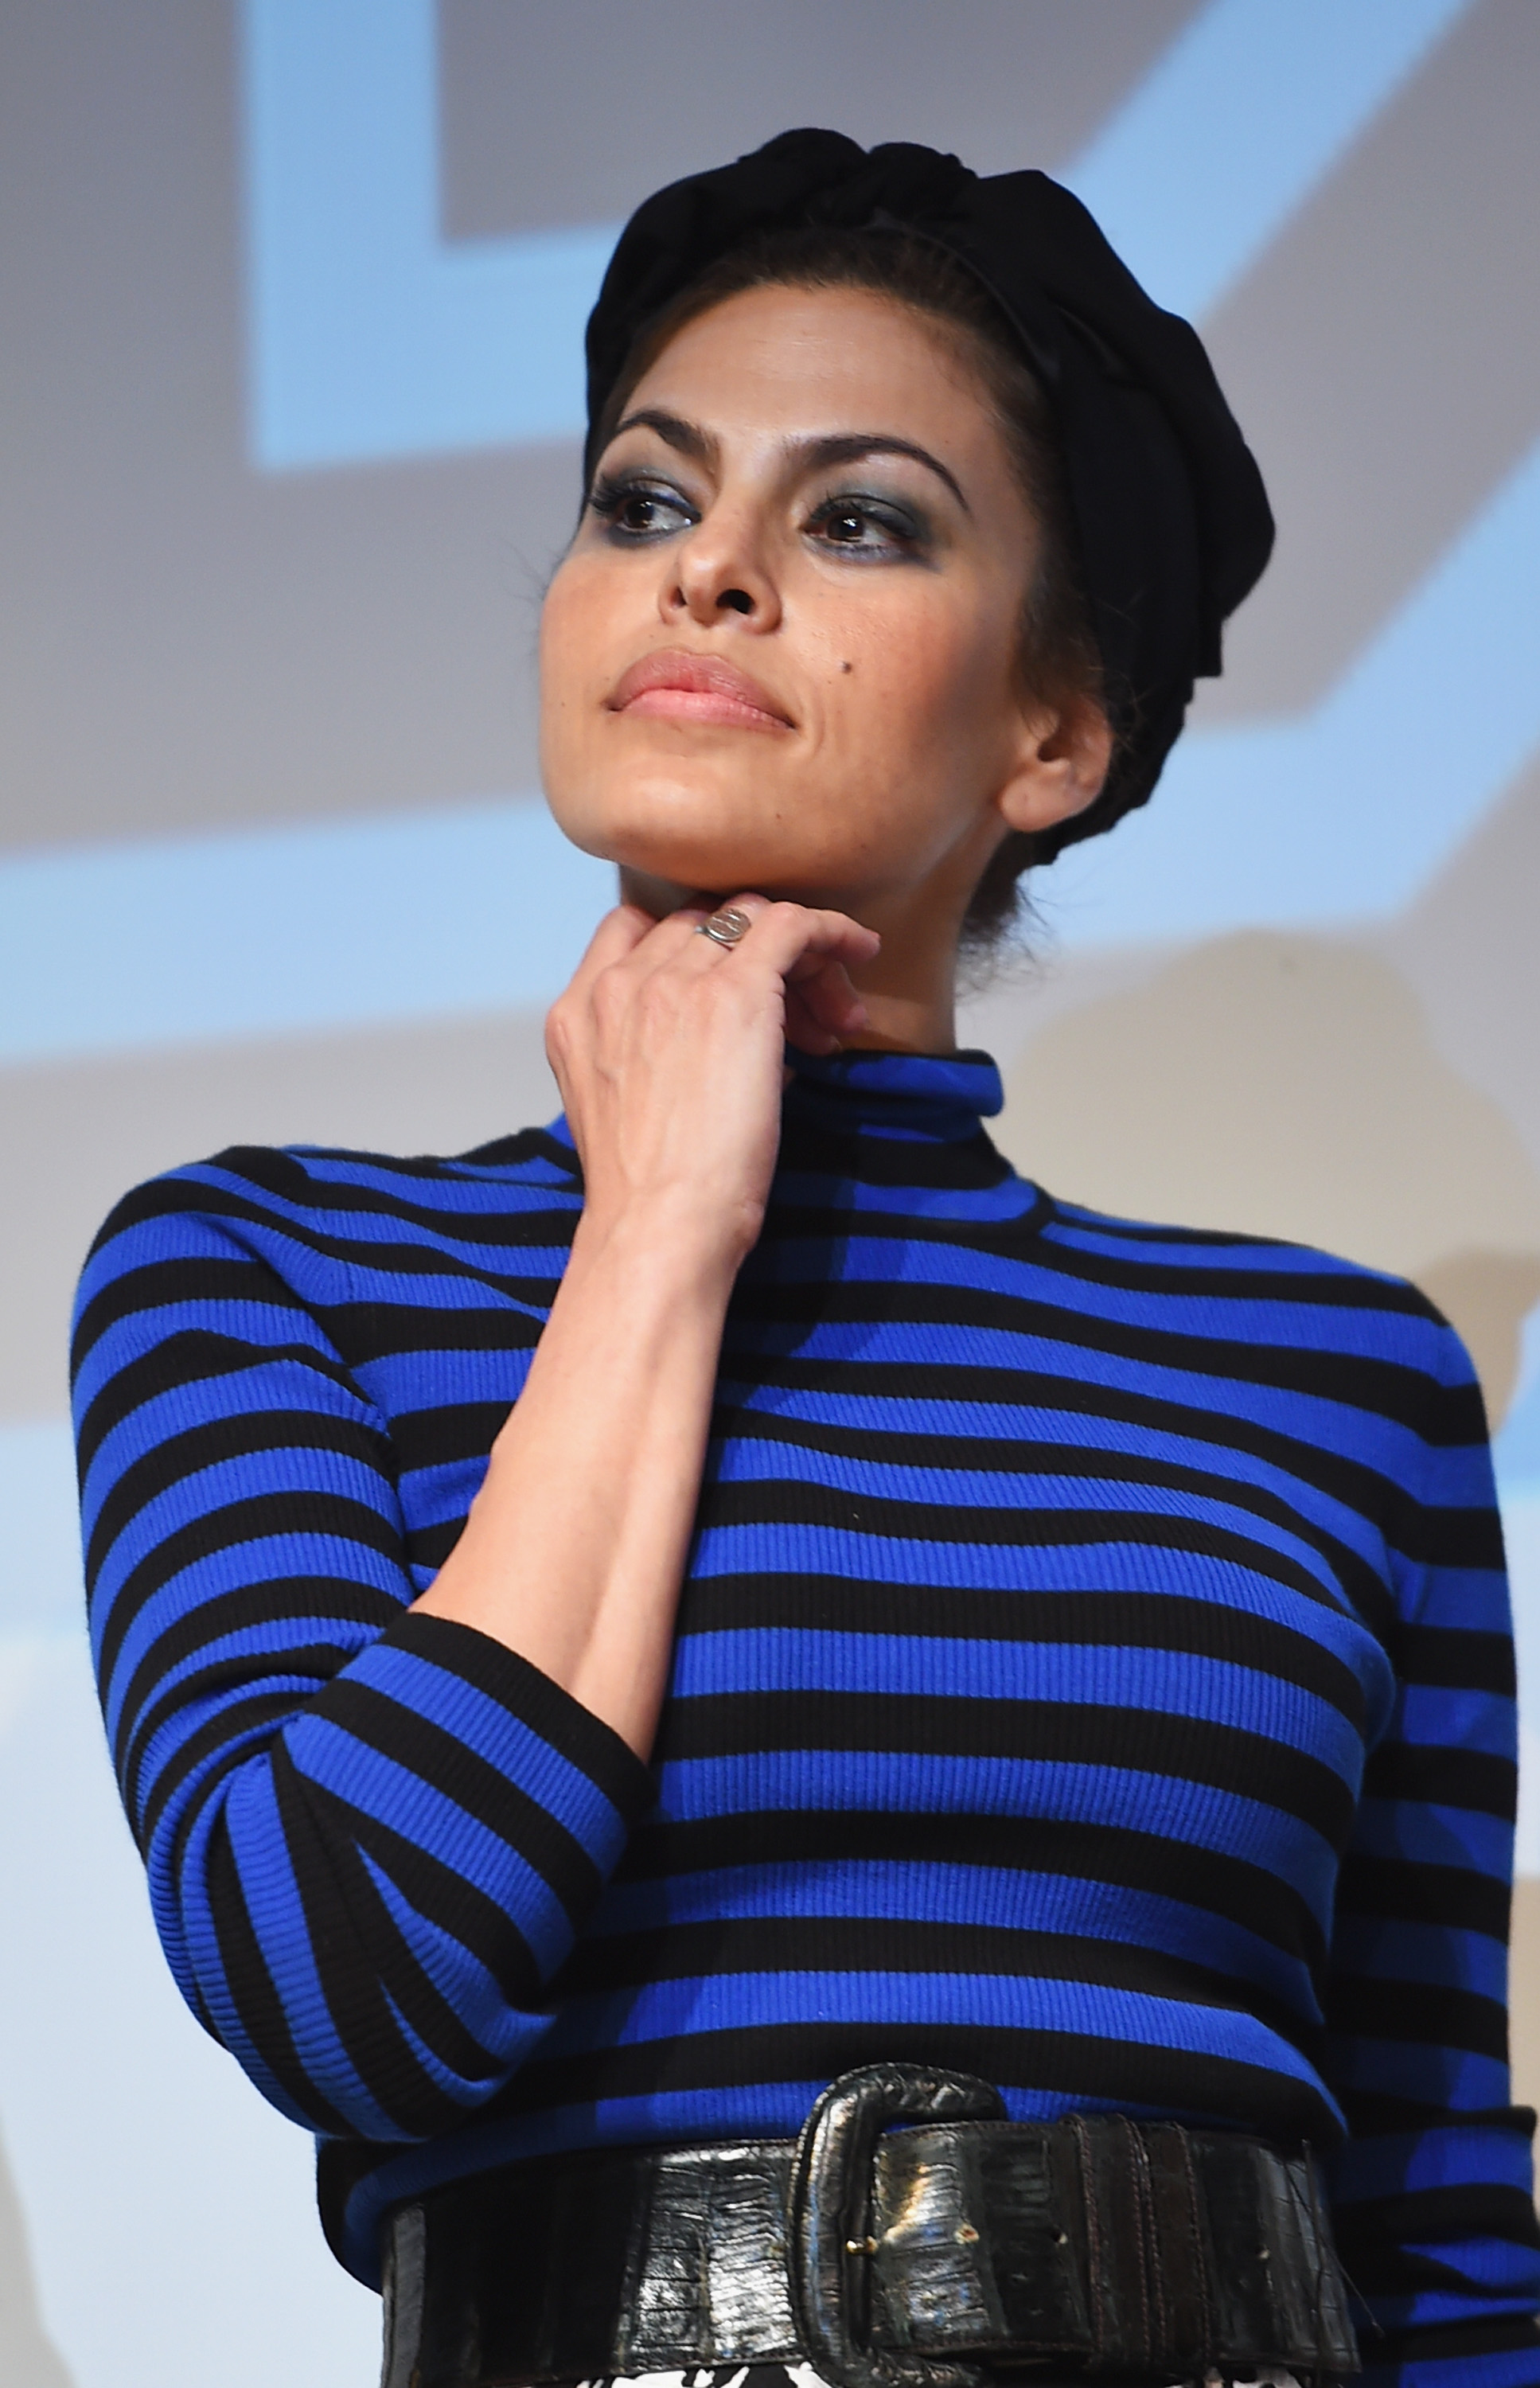 Eva Mendes during the 2015 SXSW Music, Film + Interactive Festival on March 14, 2015 in Austin, Texas.